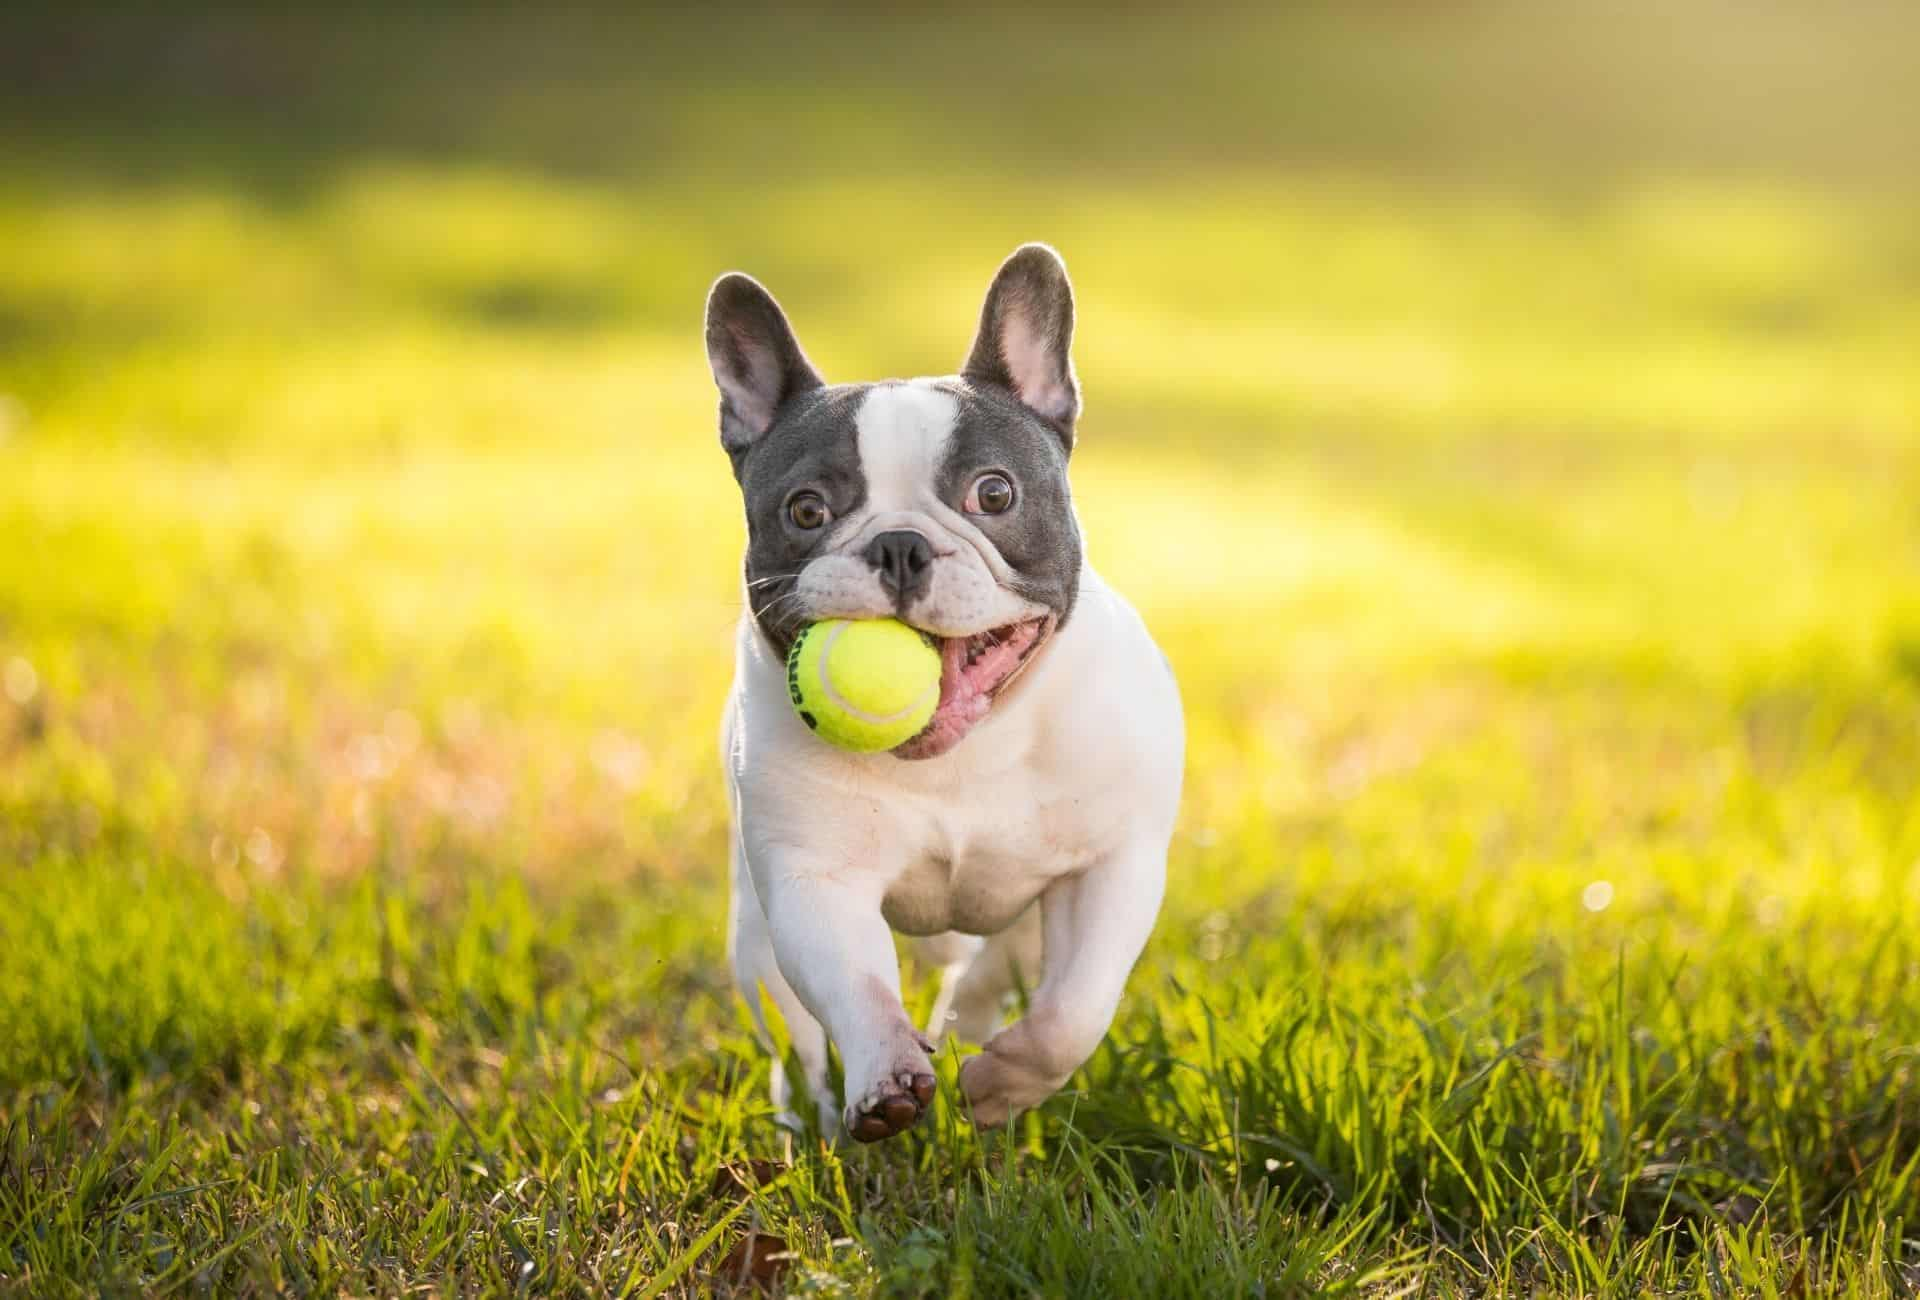 Healthy French Bulldog fetching a ball outside. Healthy Frenchies have no issue with running or cooling off due to the hips or flat nose.